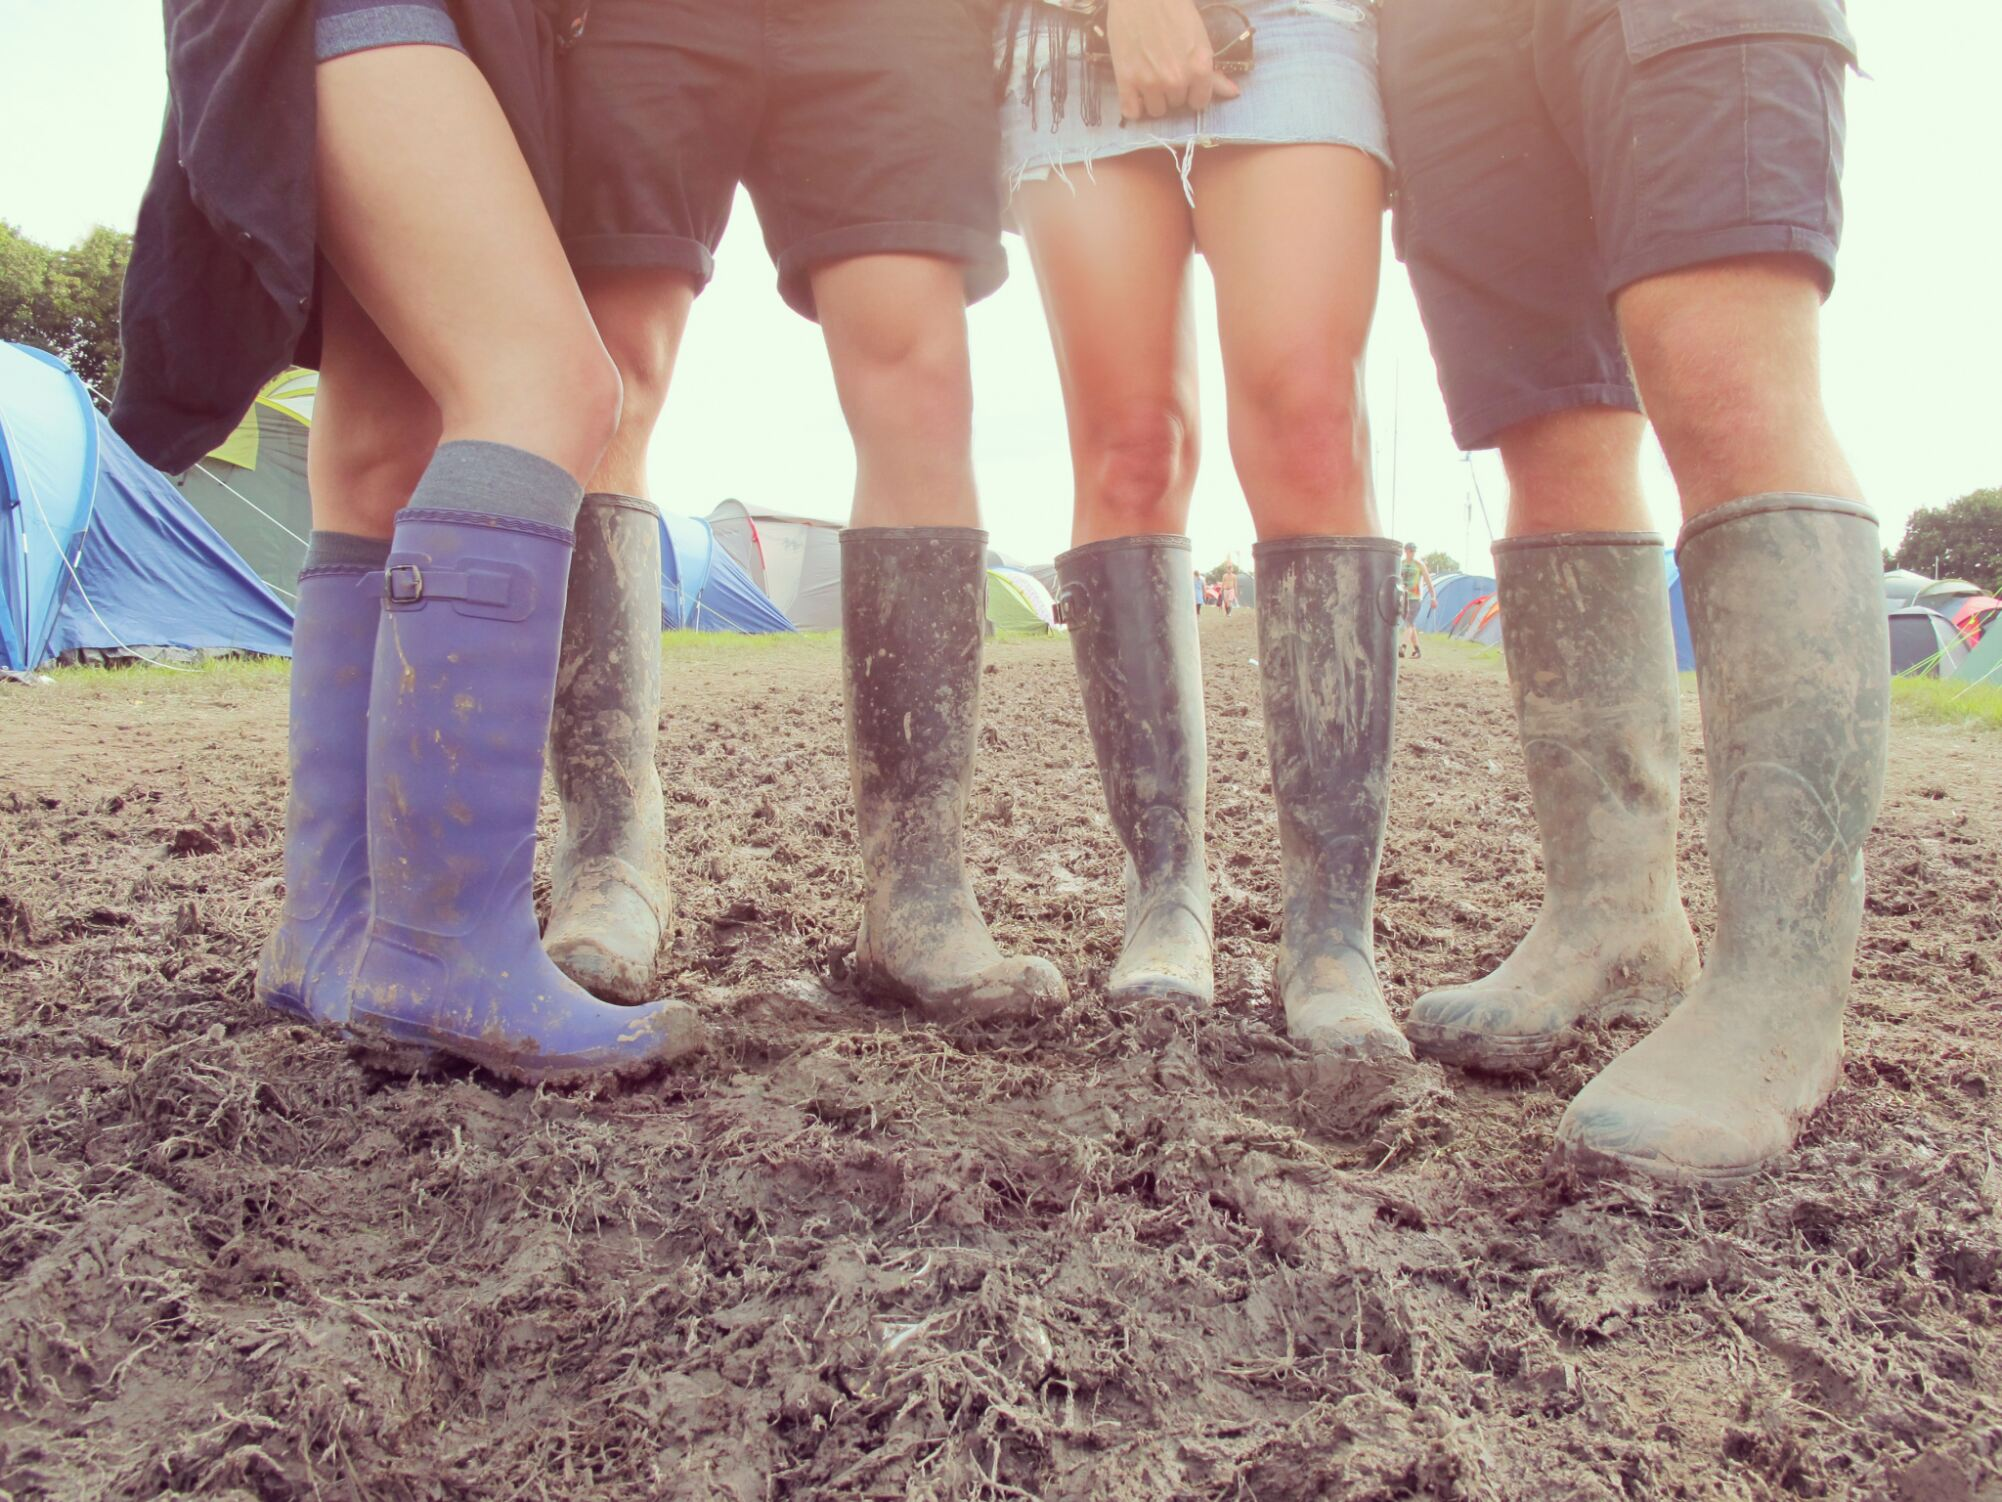 Camping socks survival guide